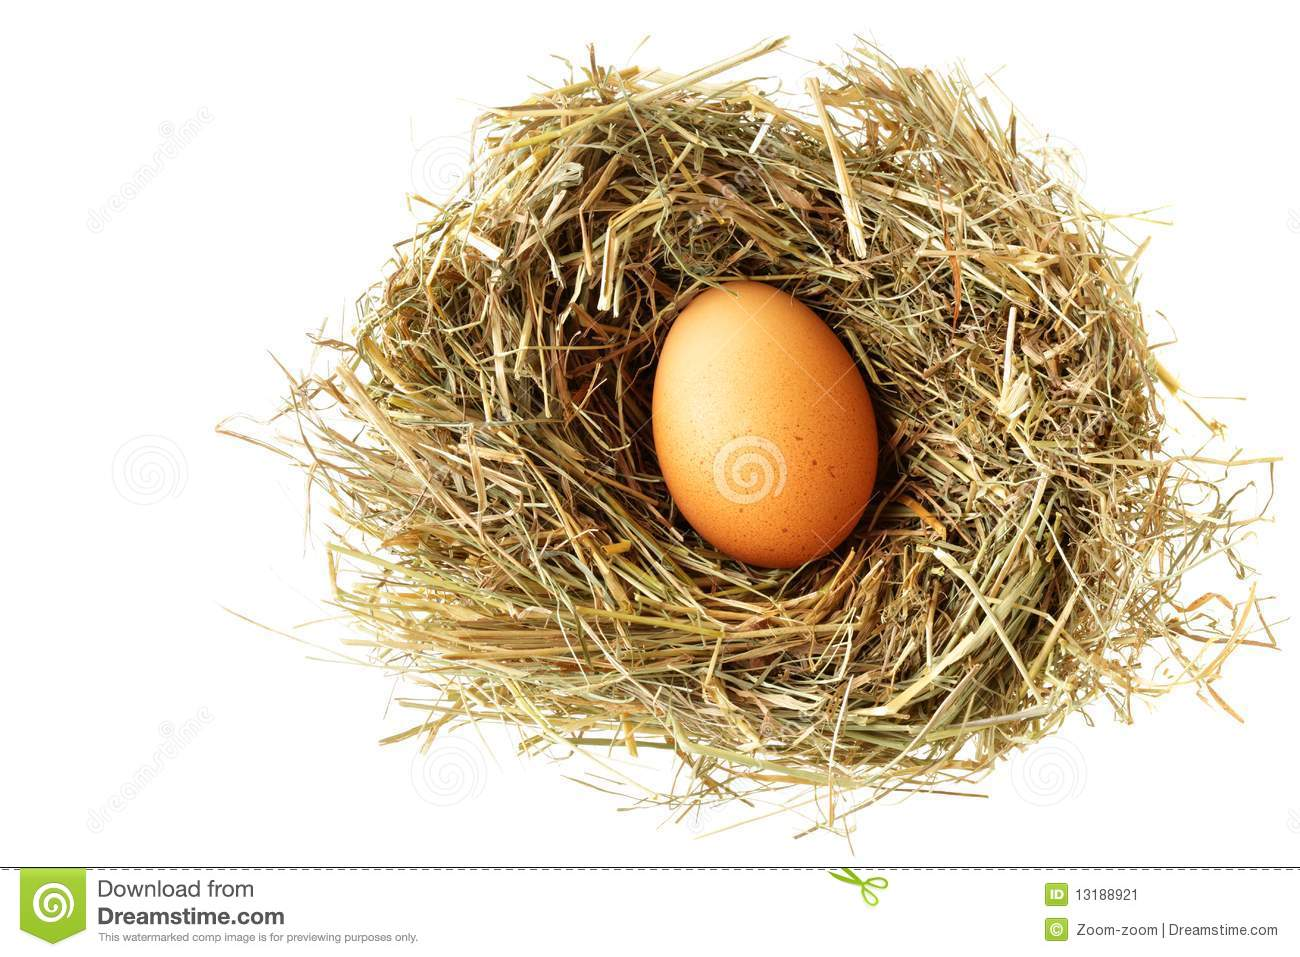 Nest with brown egg isolated over white background.